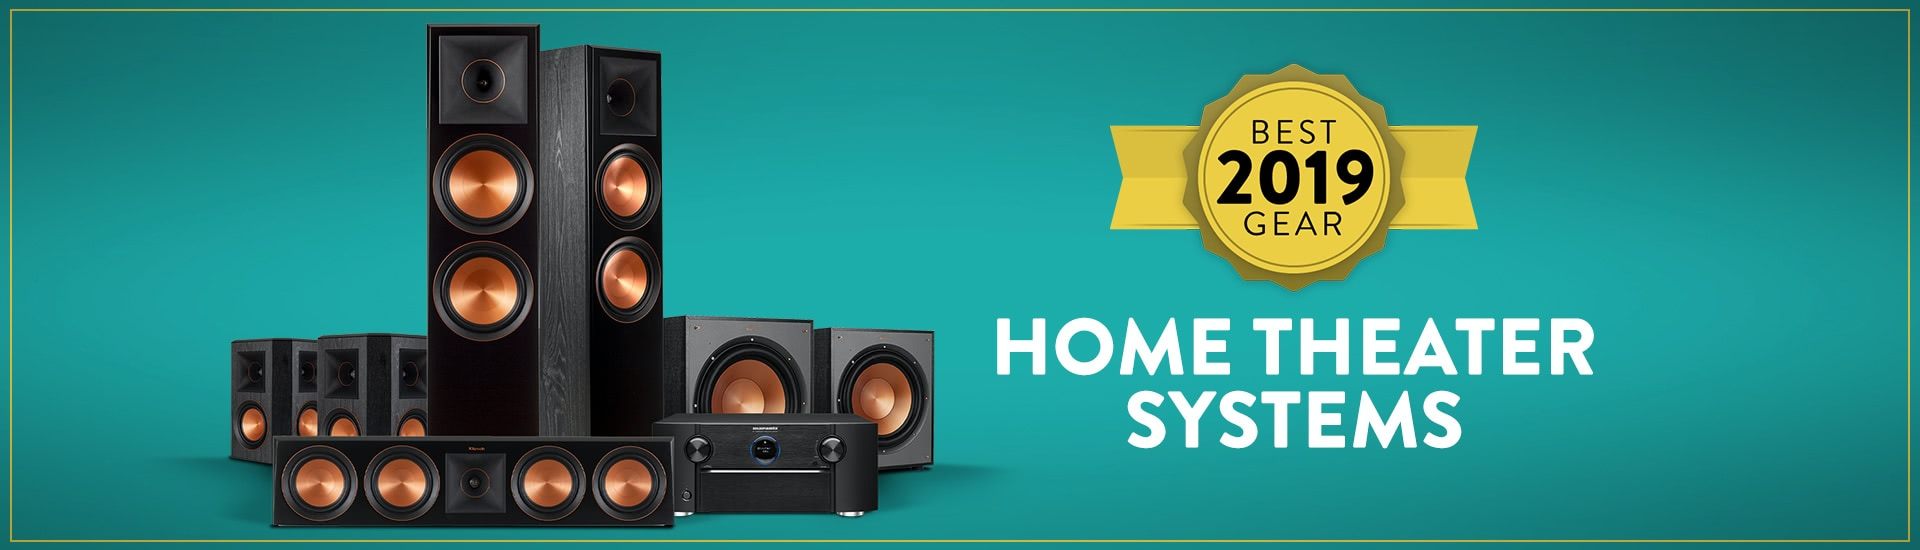 20190717 2019 best home theater systems blog header